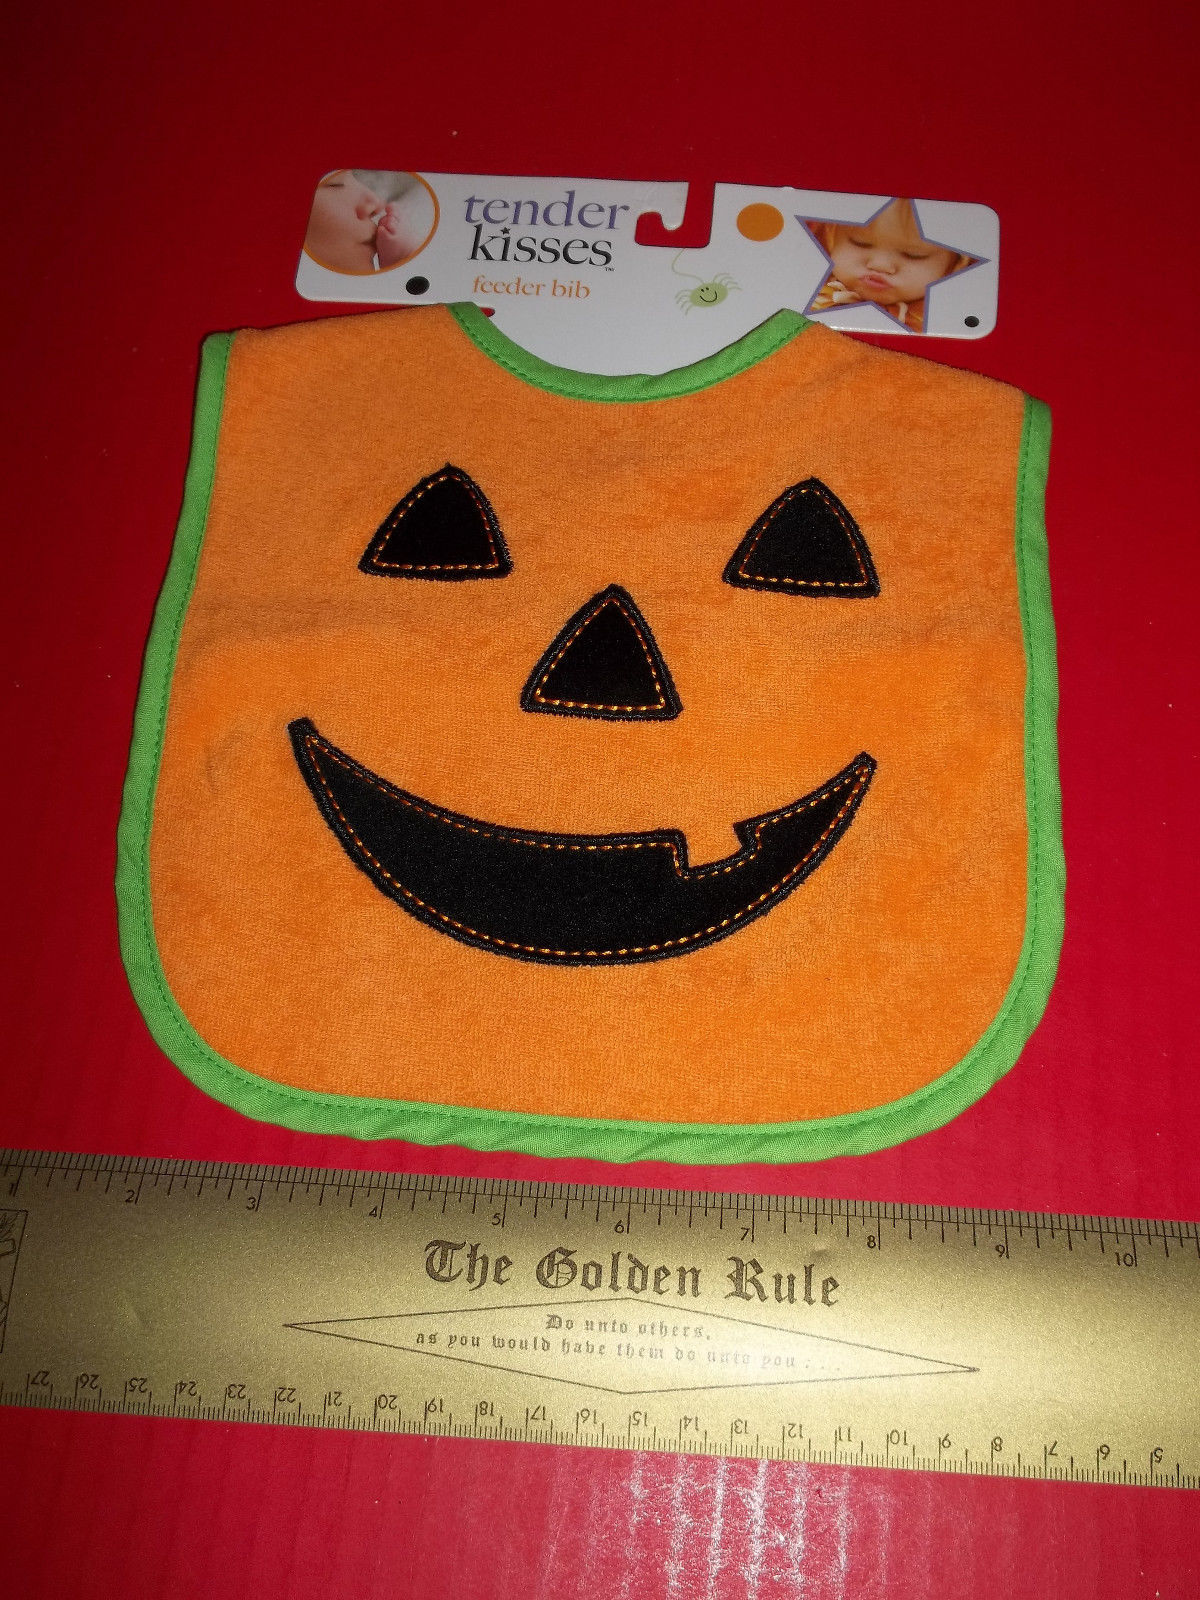 Primary image for Fashion Holiday Baby Clothes Tender Kisses Halloween Orange Pumpkin Feeder Bib